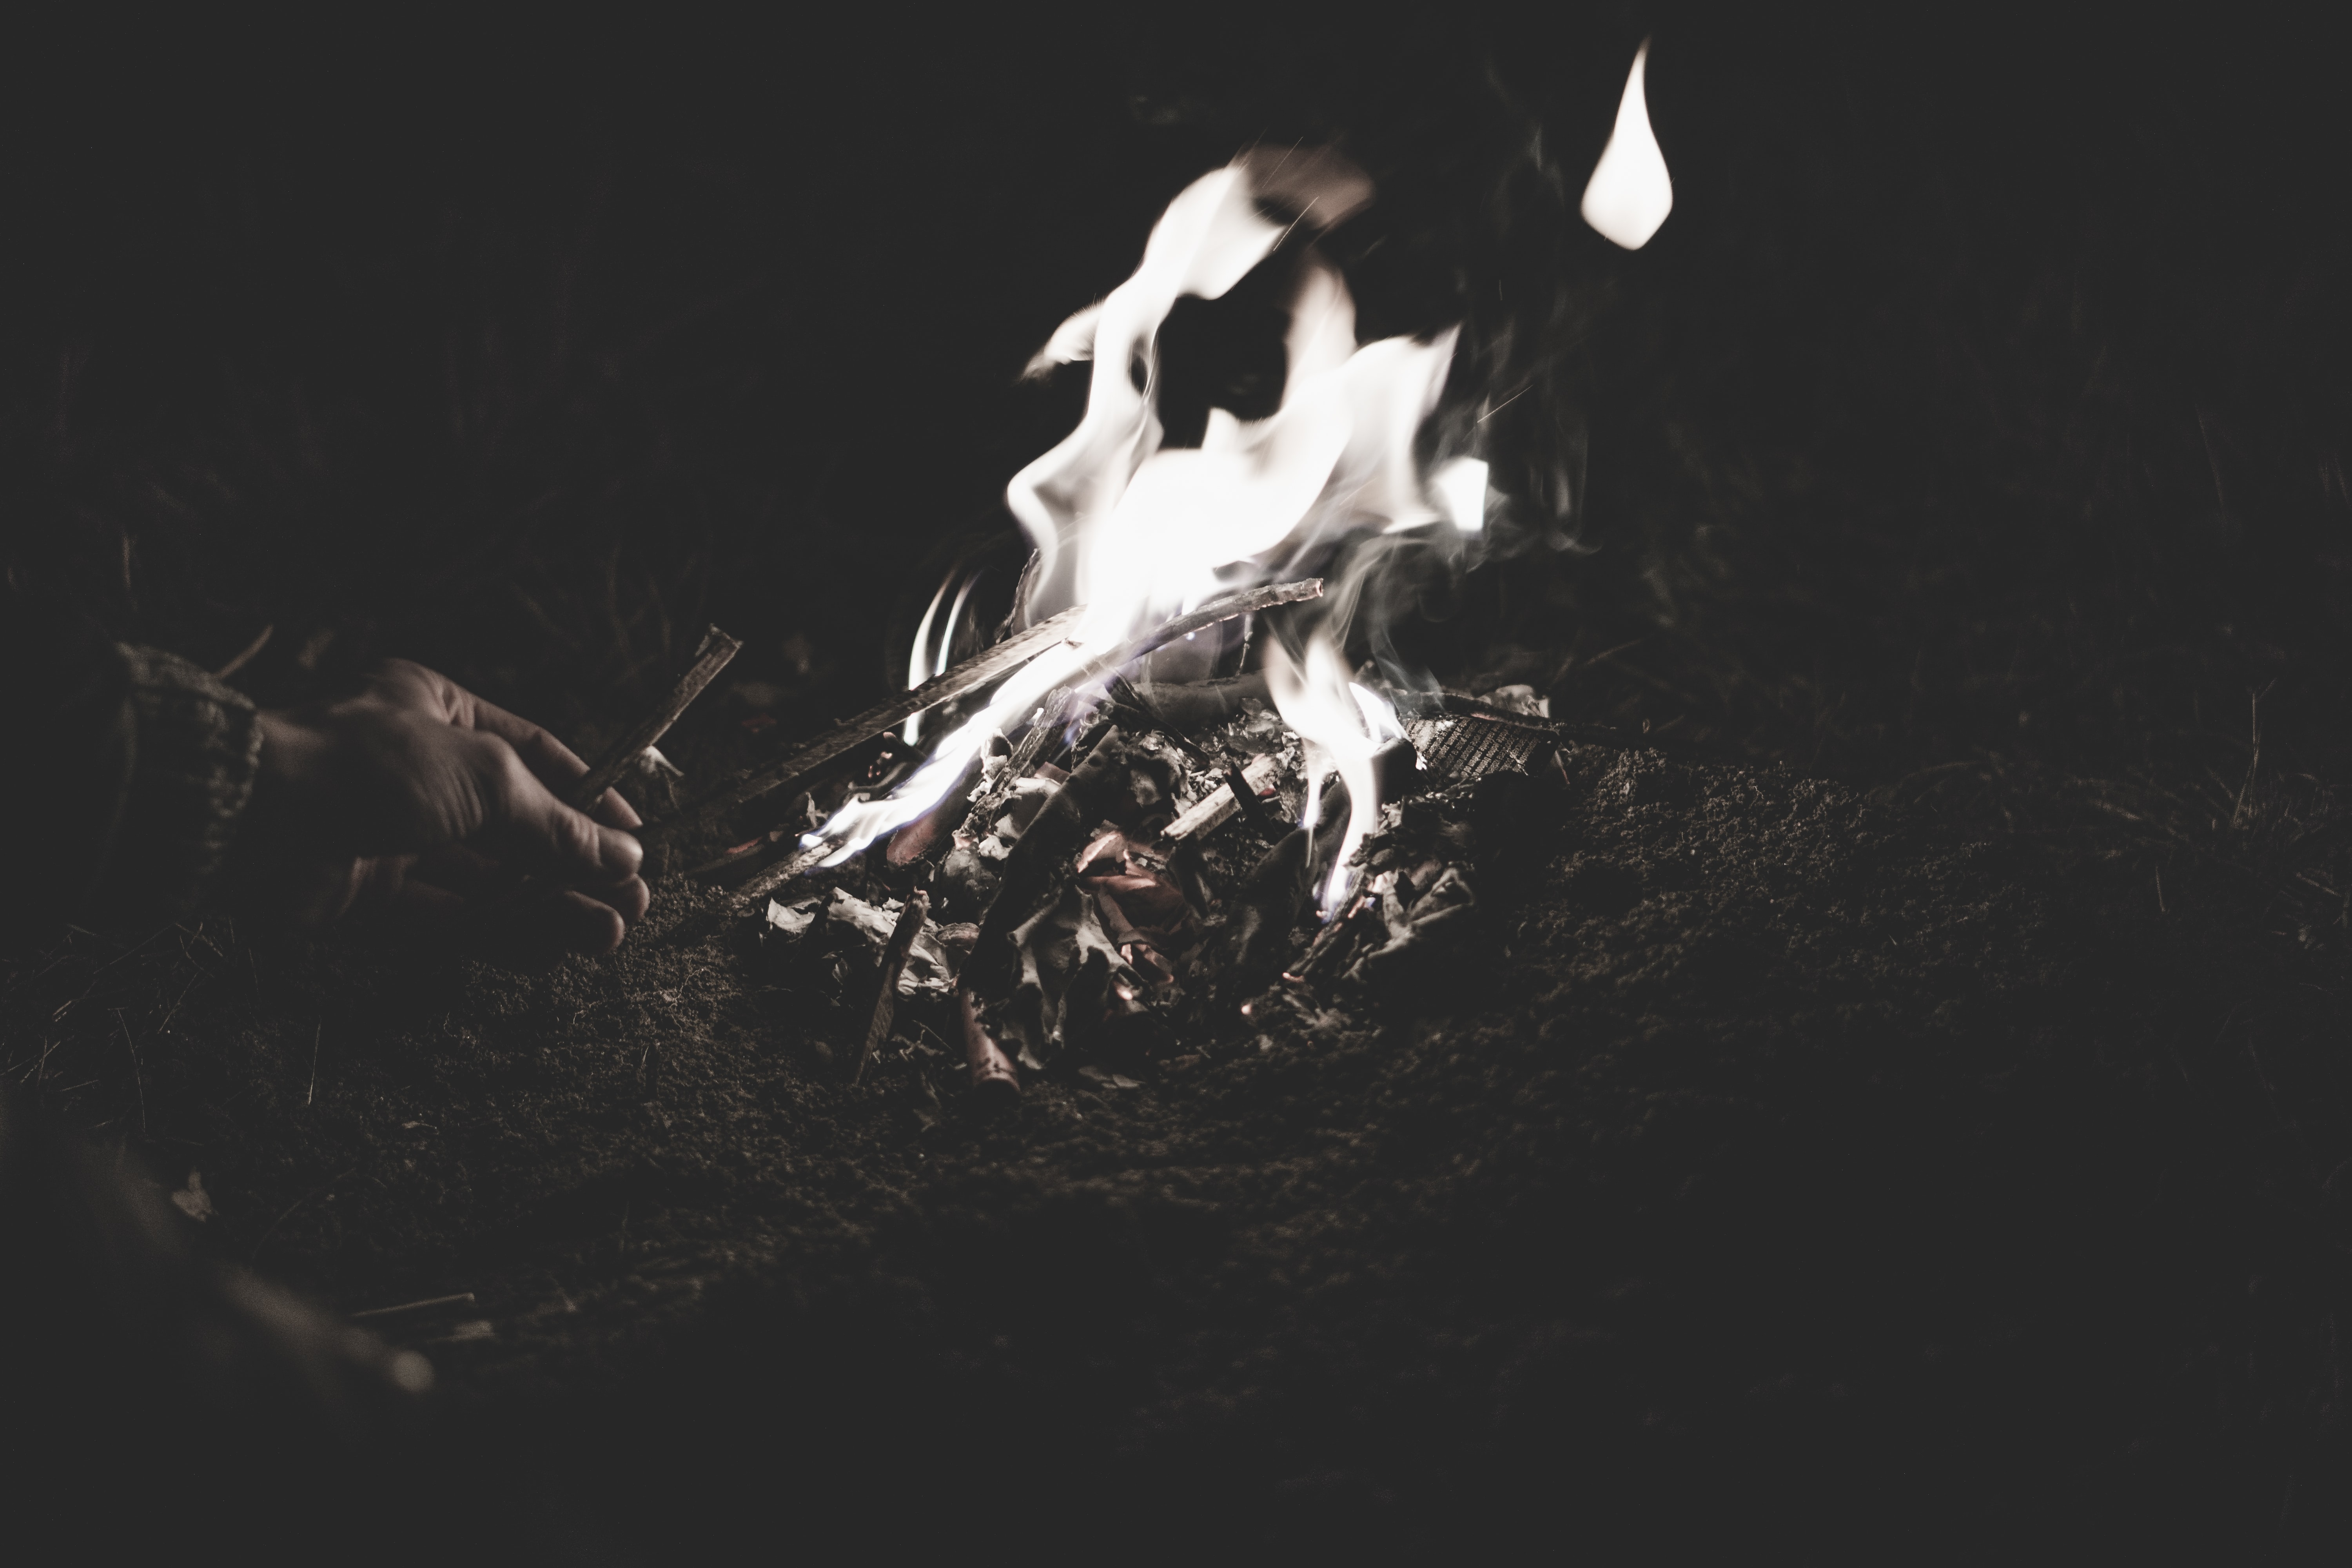 grayscale photography of bonfire